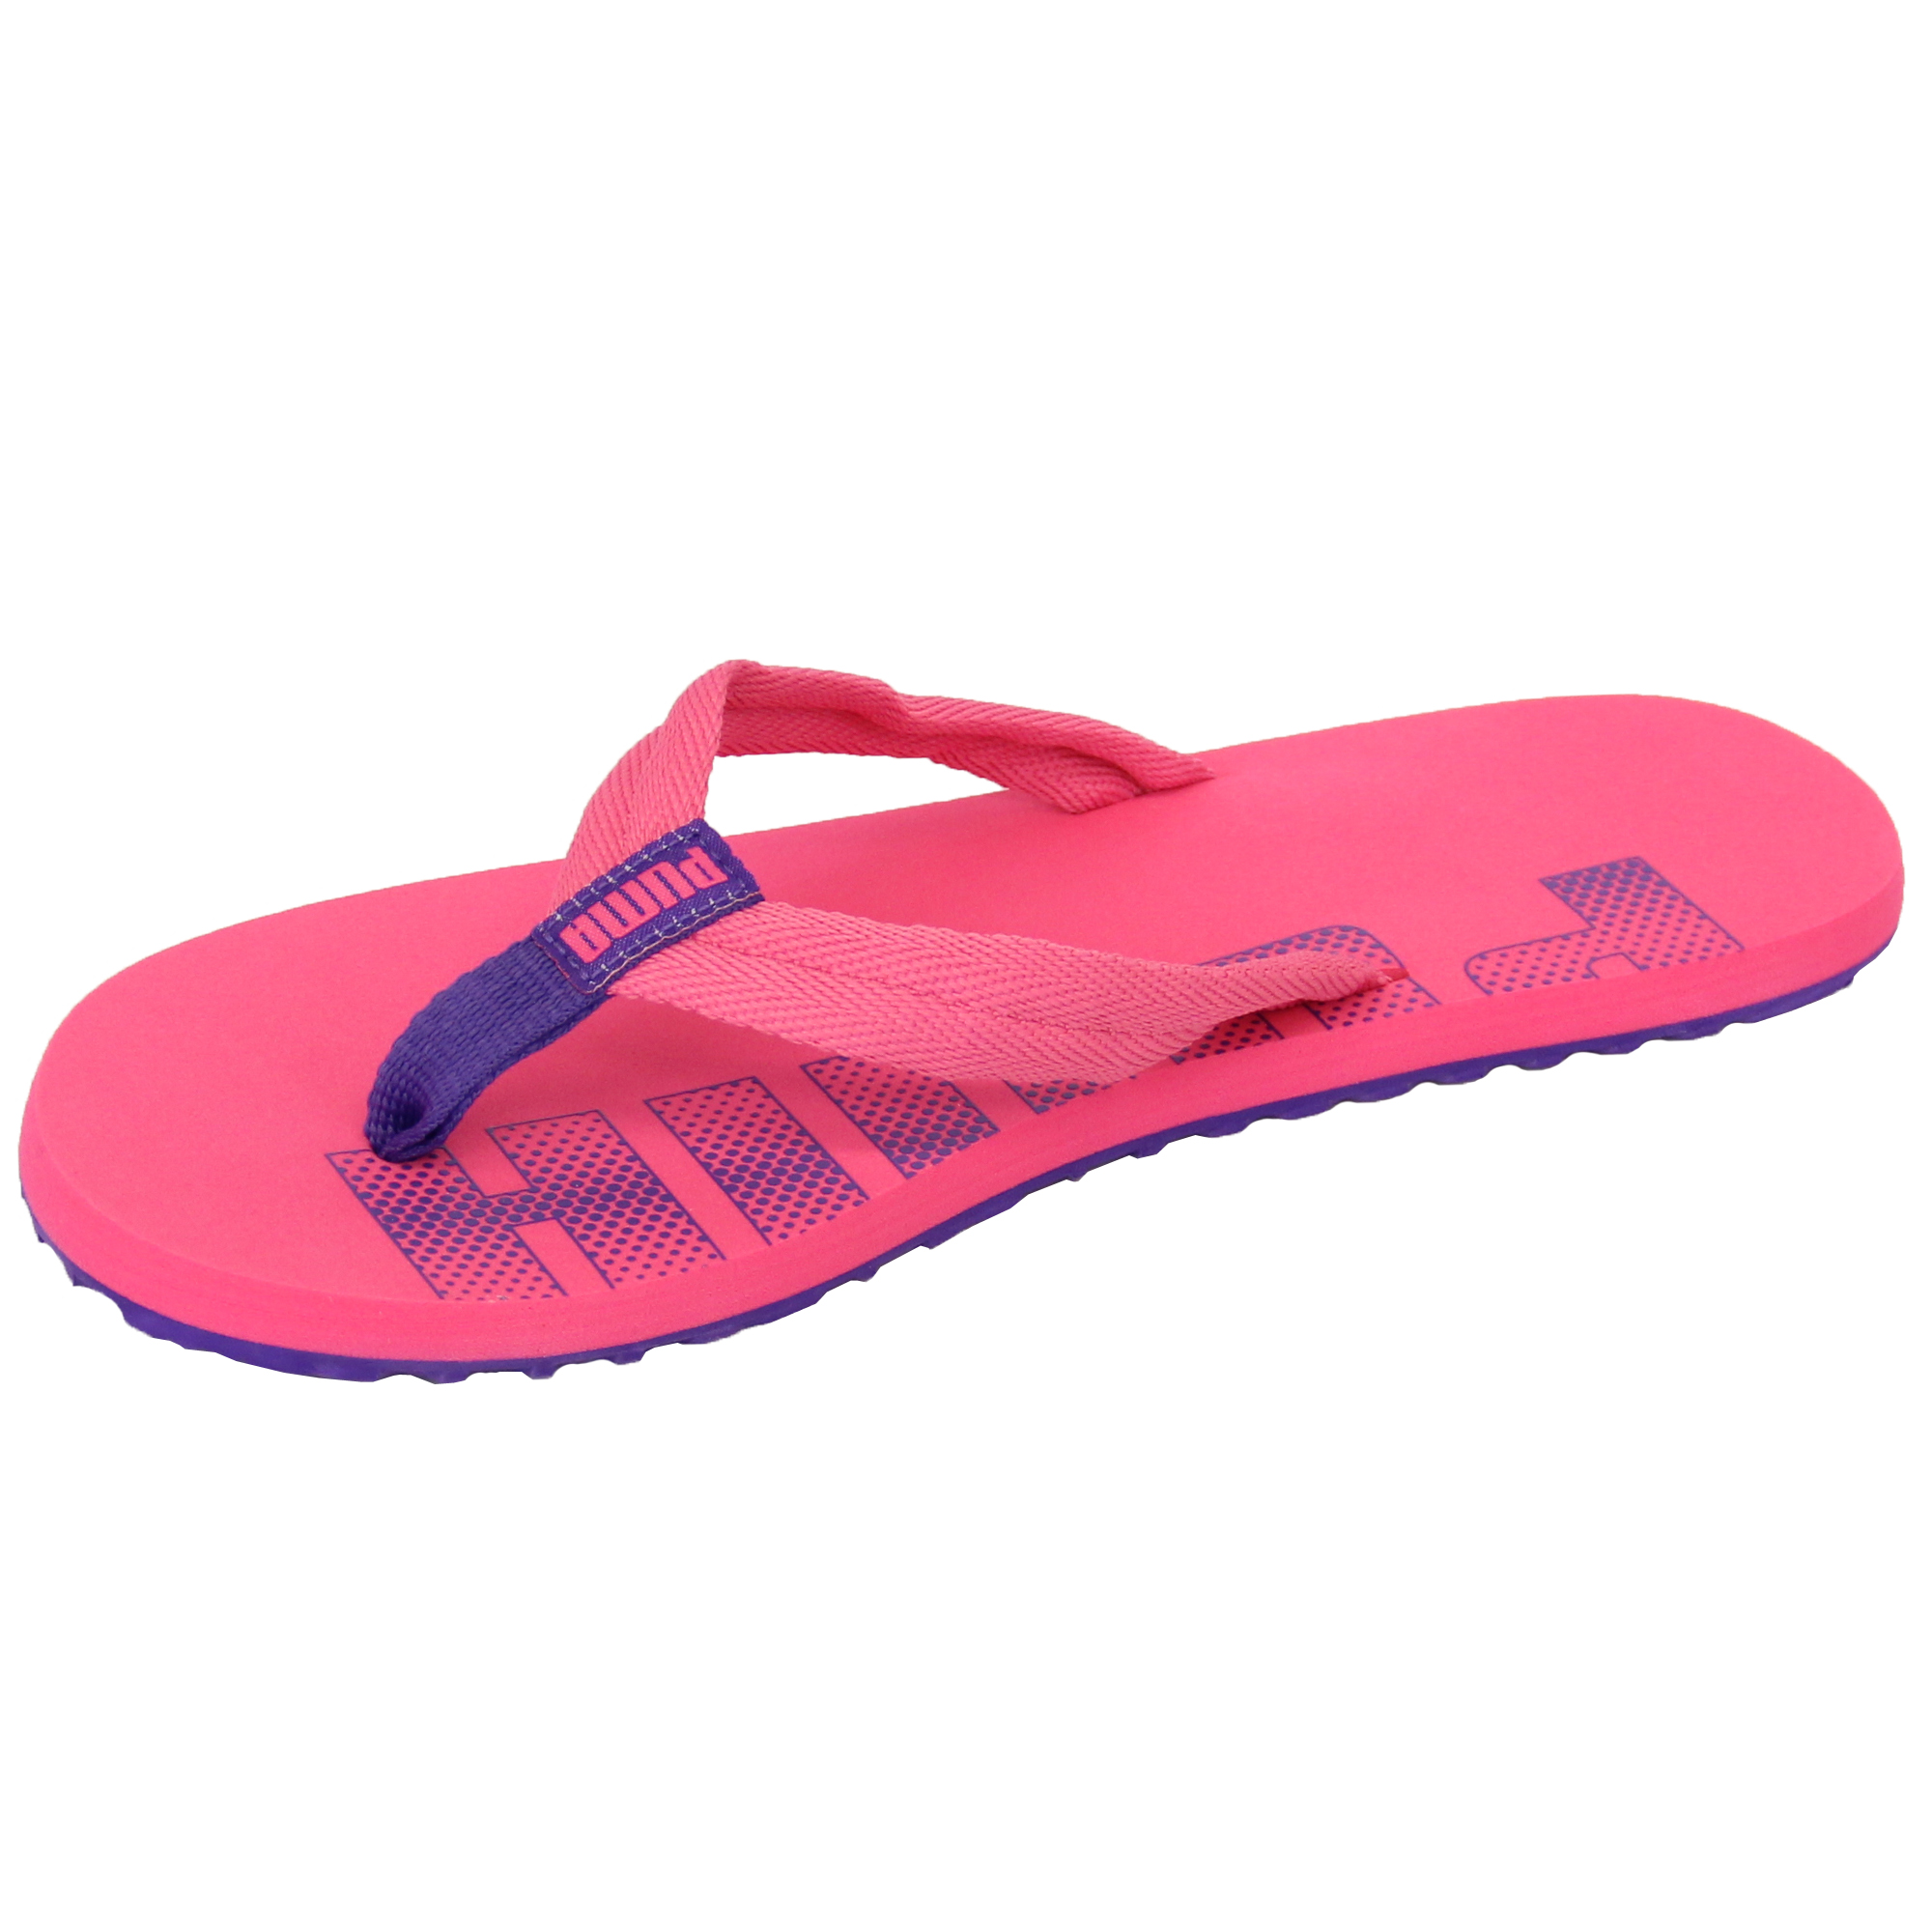 Boys Puma Epic Flip Flops Kids Toe Post Girls Sandals Summer ... 918ccd0eb